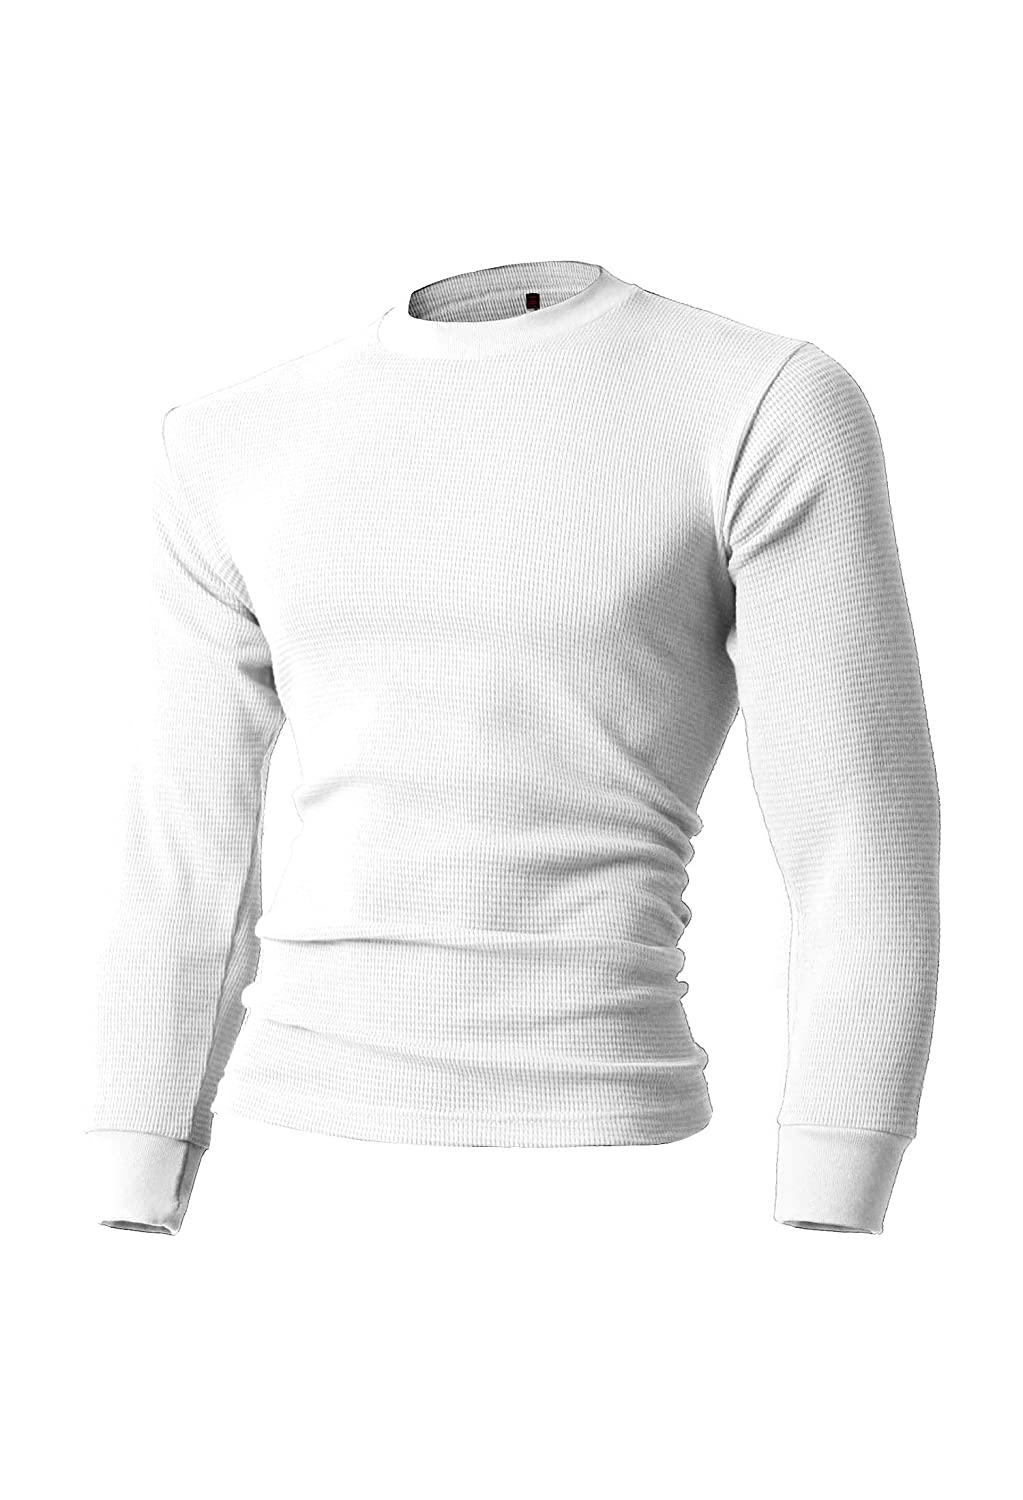 b21f29bb Machine Washable in cold; Tumble Dry Low , Do Not Iron Double needle  stitching on neck, sleeve ends, and bottom straight hem; Shoulder to  shoulder taping.